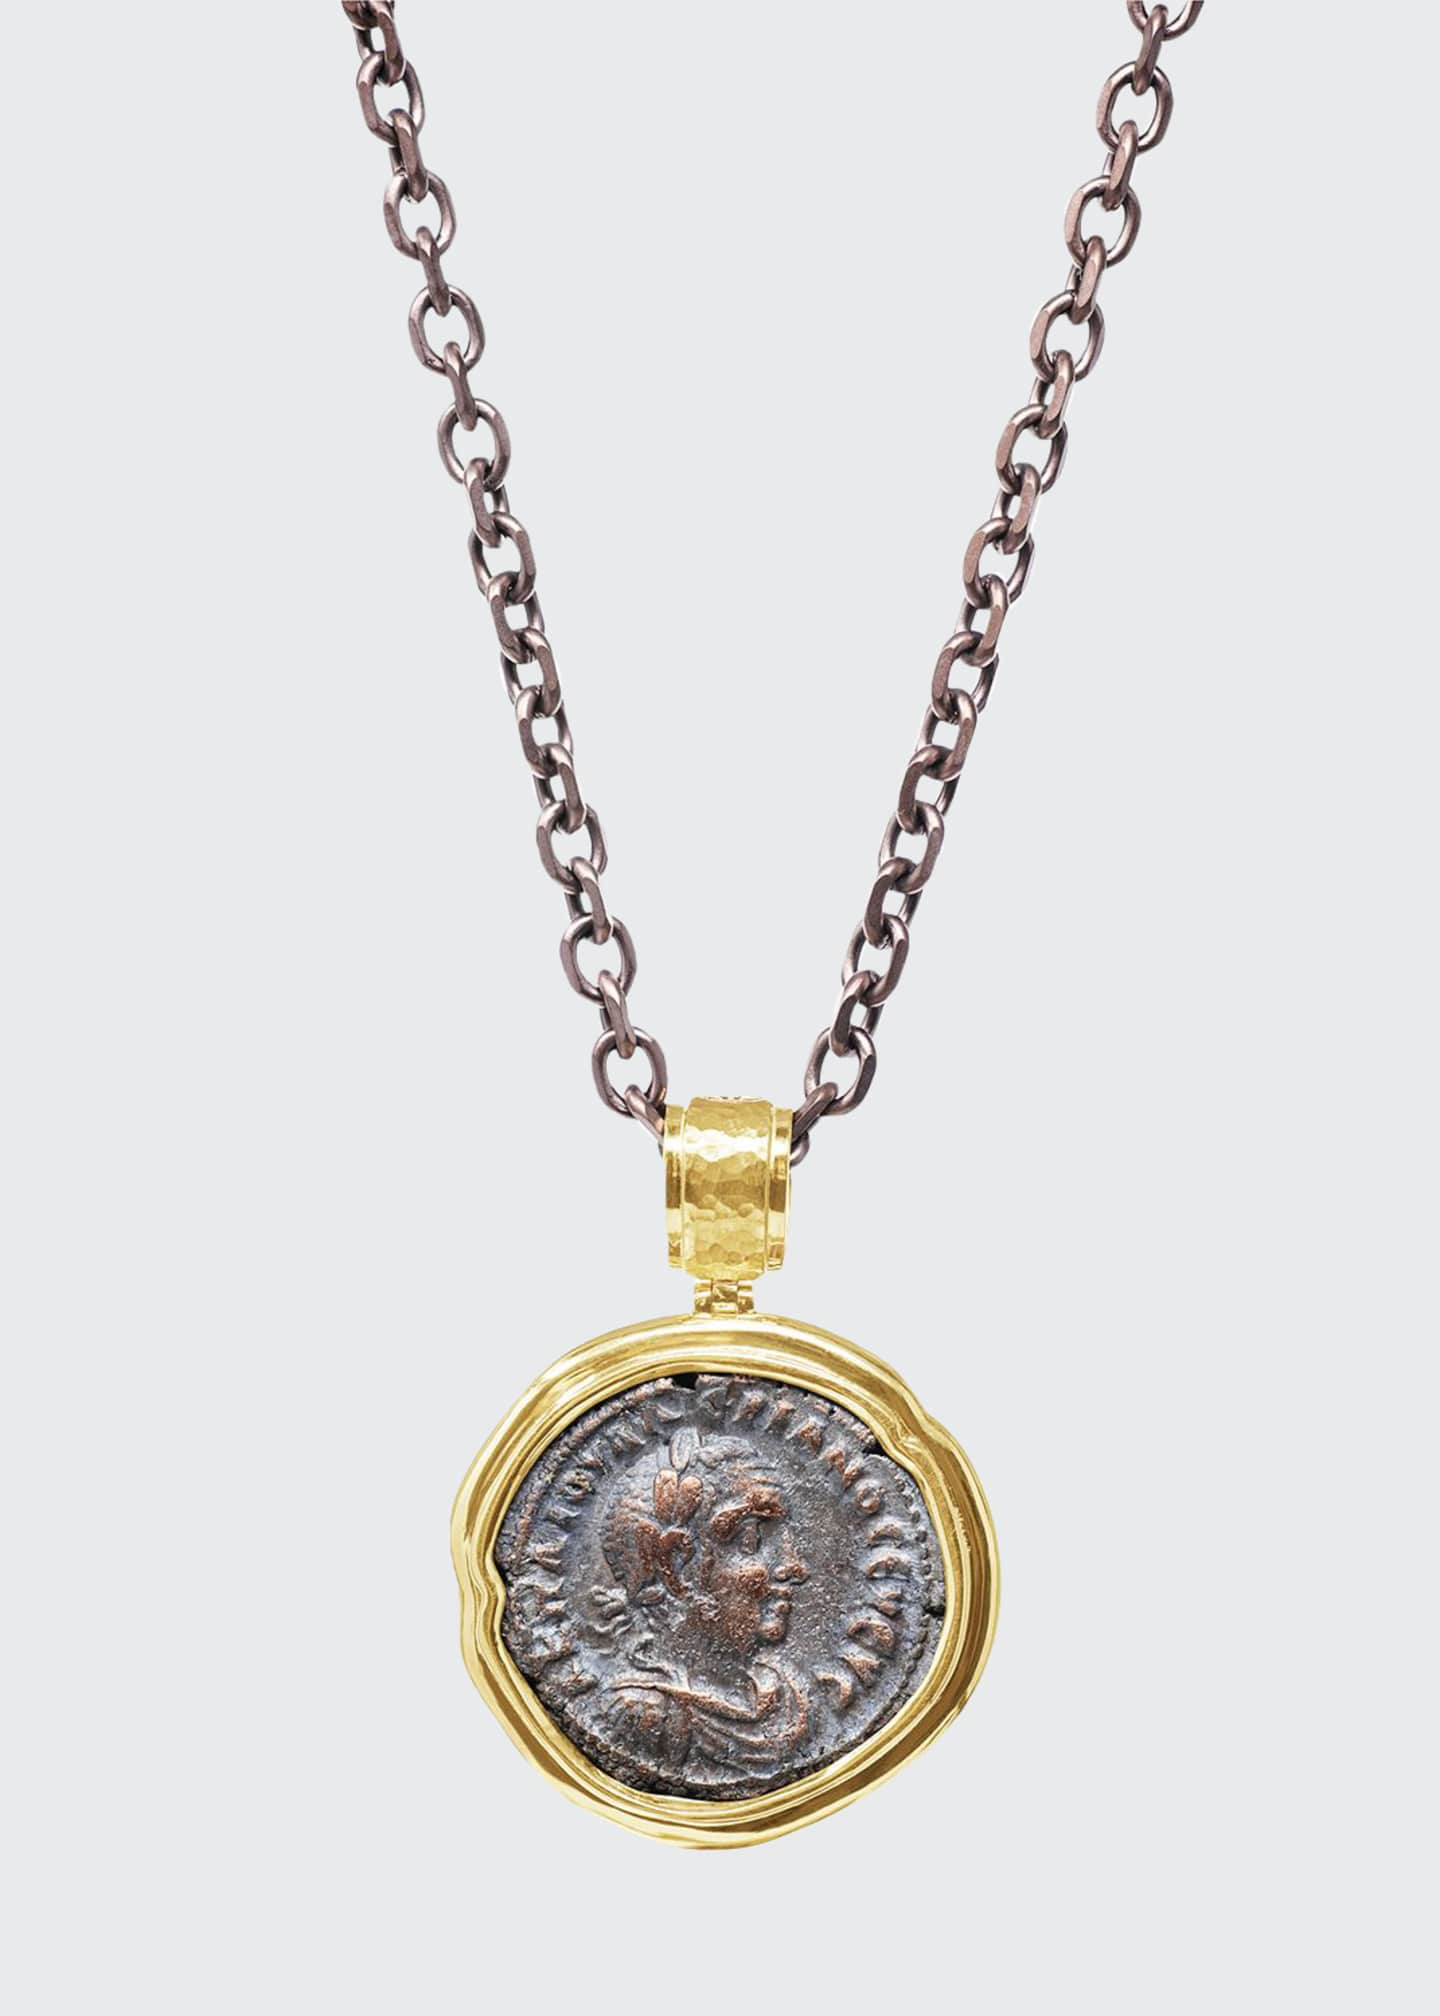 Authentic Emperor Valerian & Roman Eagle Reversible Coin